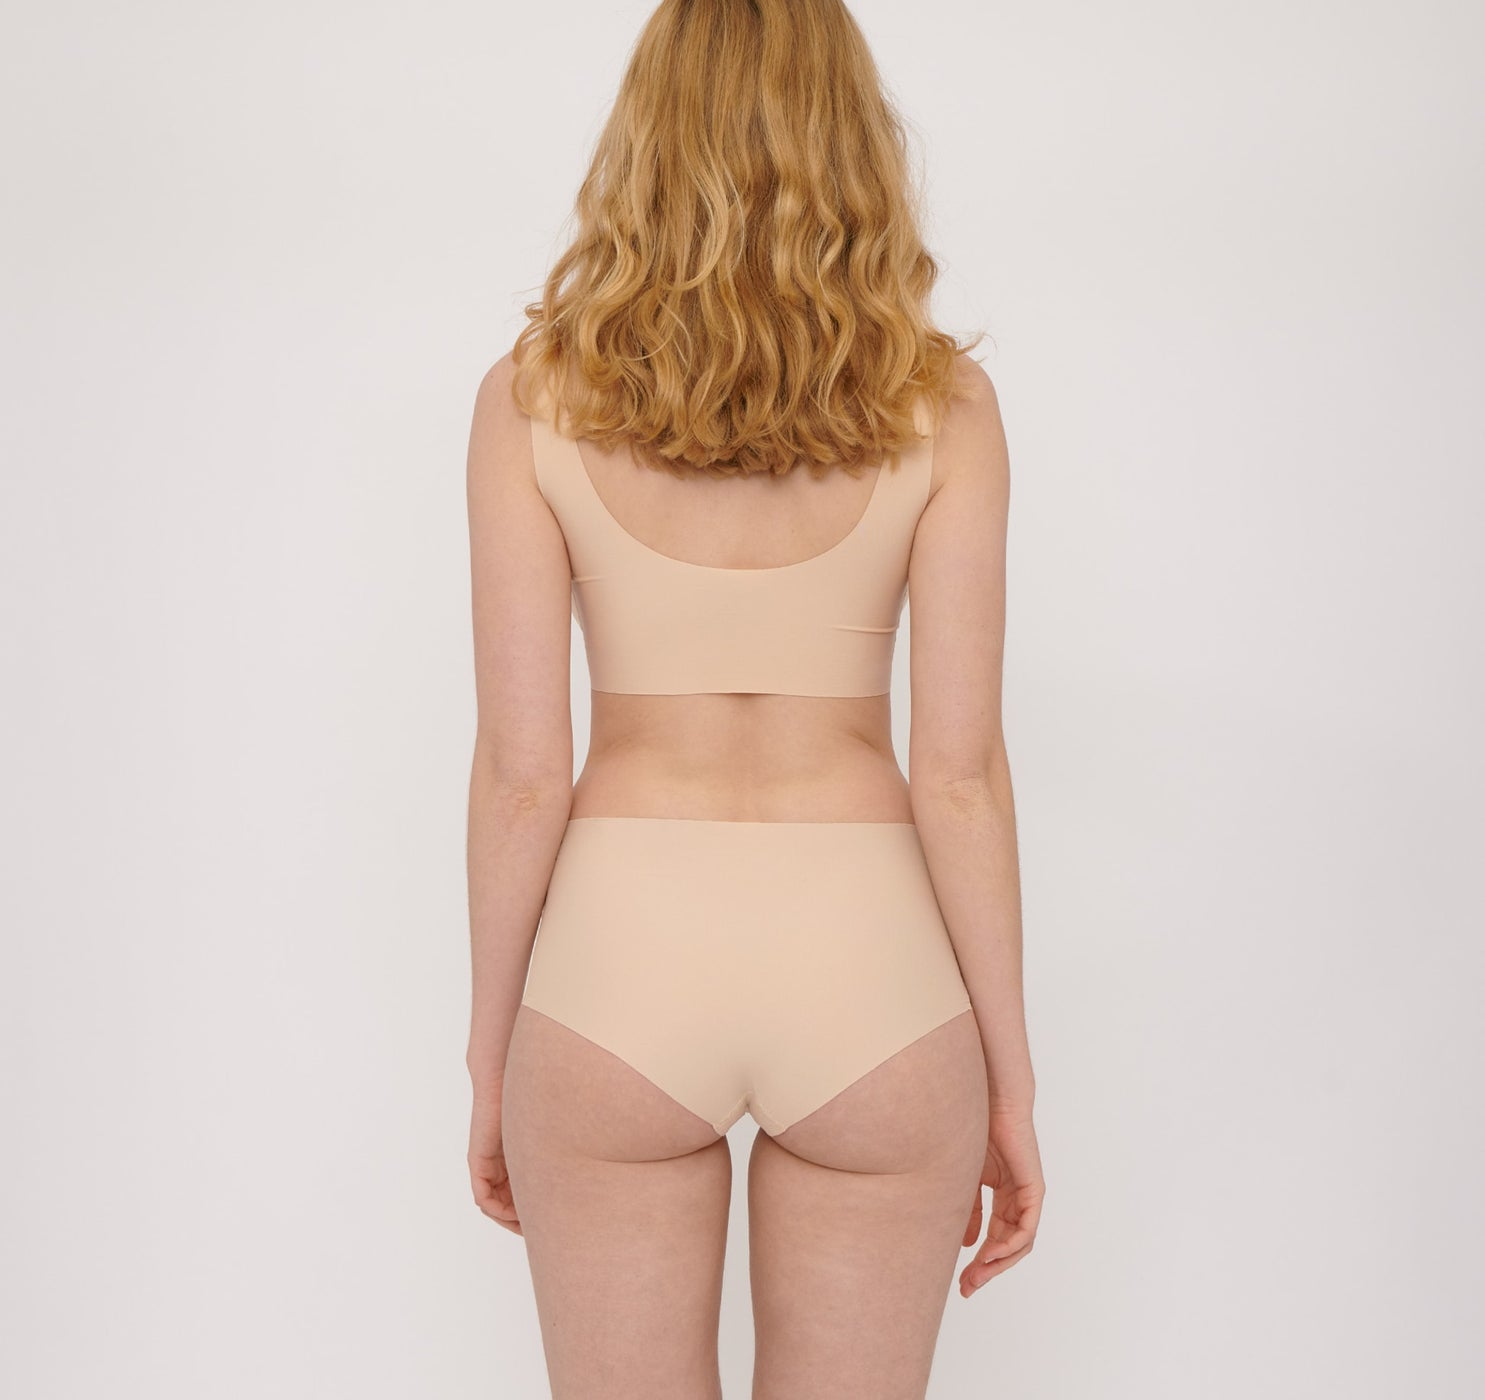 Invisible Cheeky Slips mit hohem Bund 4er-Pack